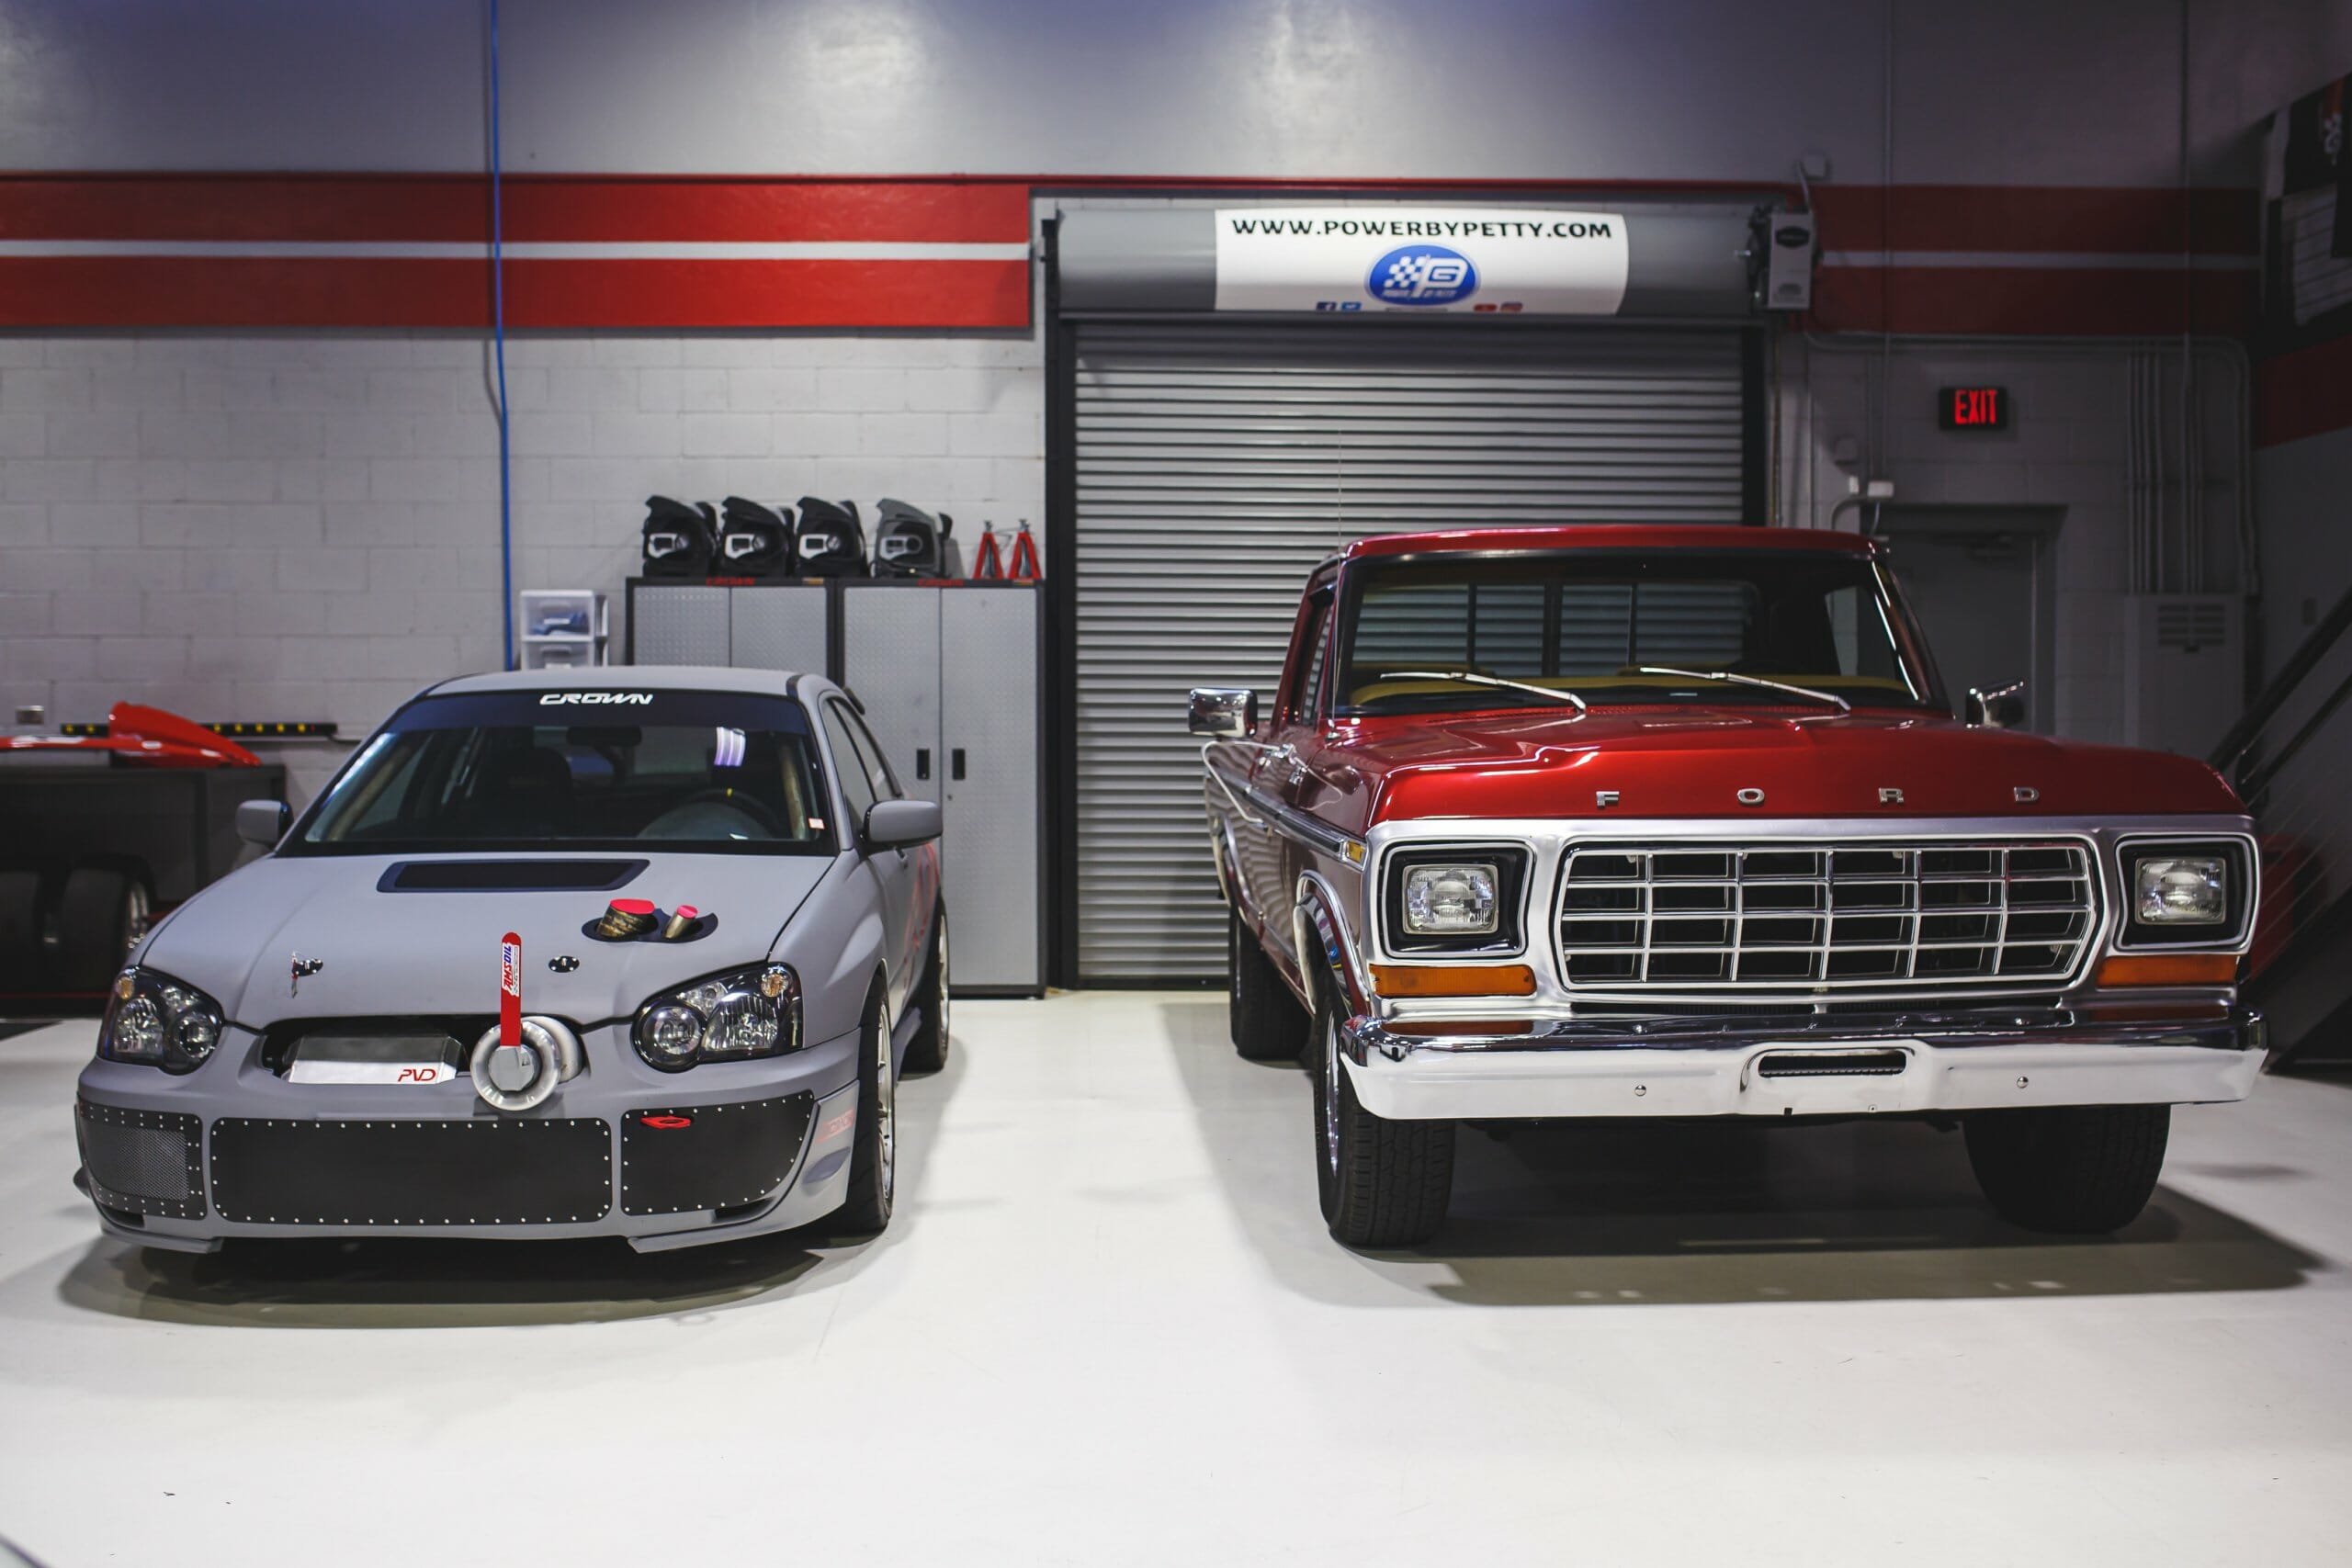 Custom Subaru build by the Crown Concepts team, next to a client classic Ford | Daniel Nikkhoo photos